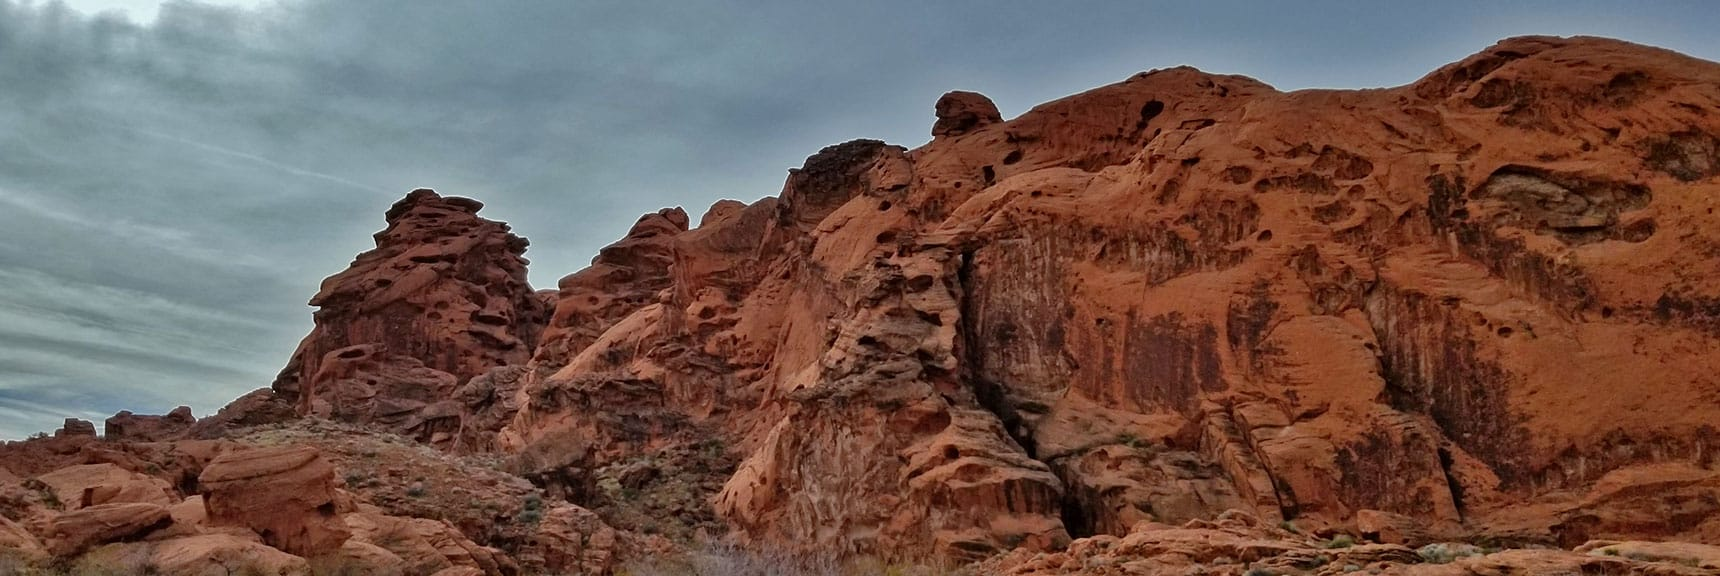 Fire Canyon in Valley of Fire State Park, Nevada